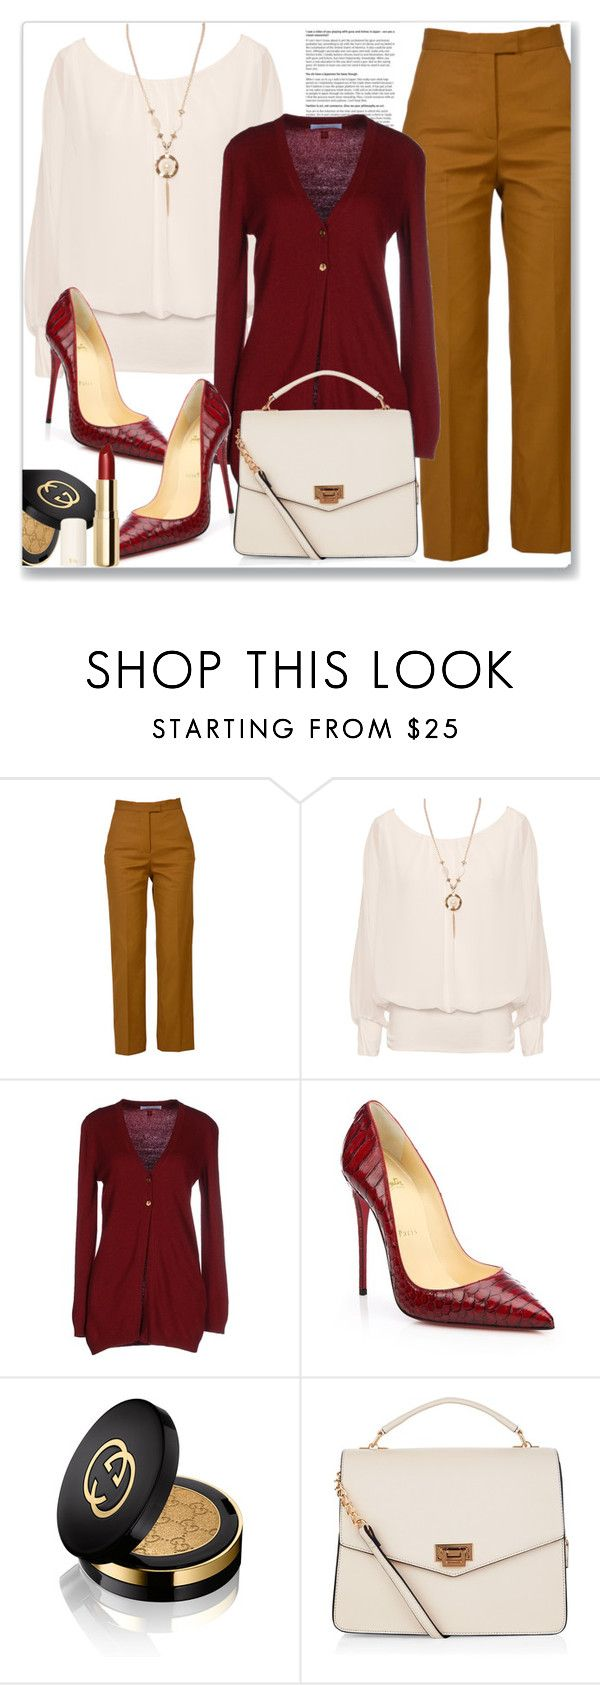 """""""All Dressed Up"""" by queenvirgo ❤ liked on Polyvore featuring MSGM, WearAll, Blumarine, Christian Louboutin, Gucci, New Look and H&M"""